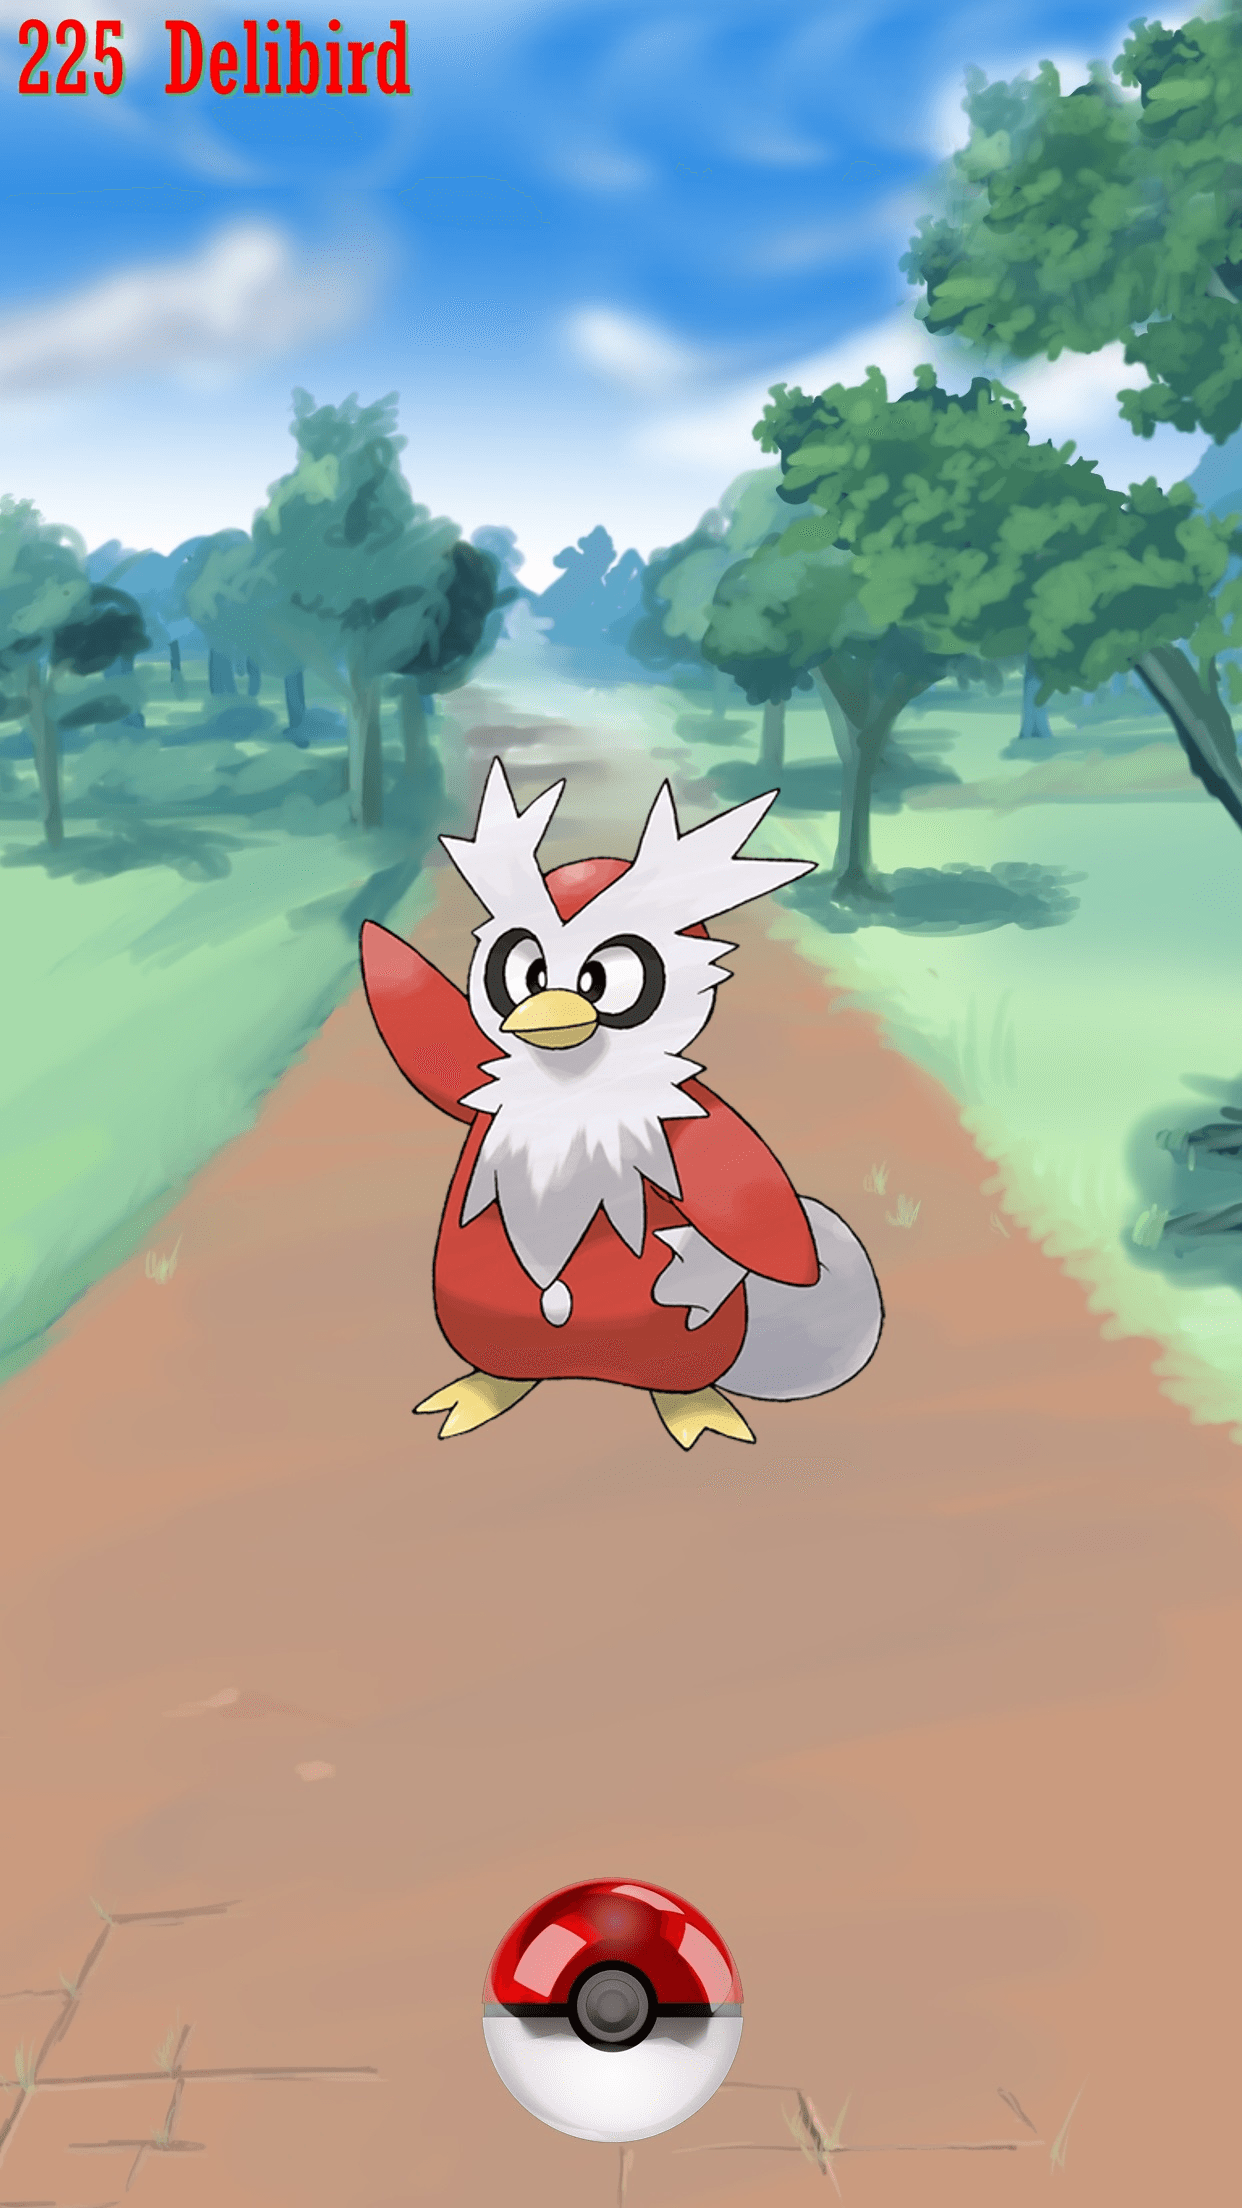 225 Street Pokeball Delibird | Wallpaper